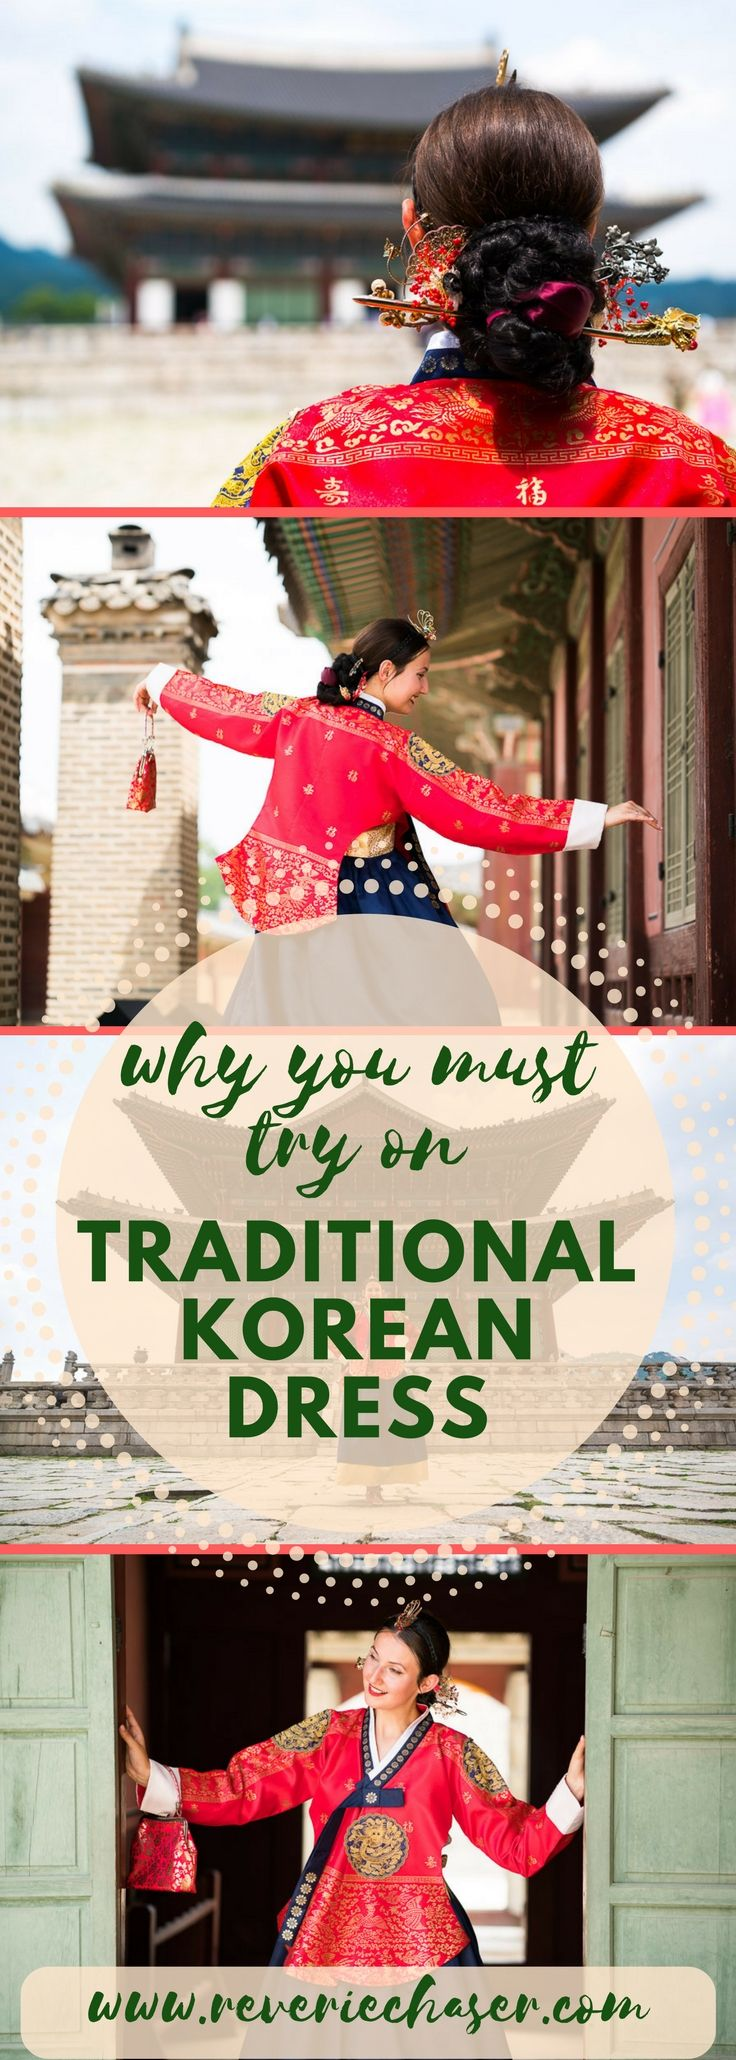 Why everyone should try on hanbok - Korean national dress. What should you know when renting one? How much does it cost and where can you get one?